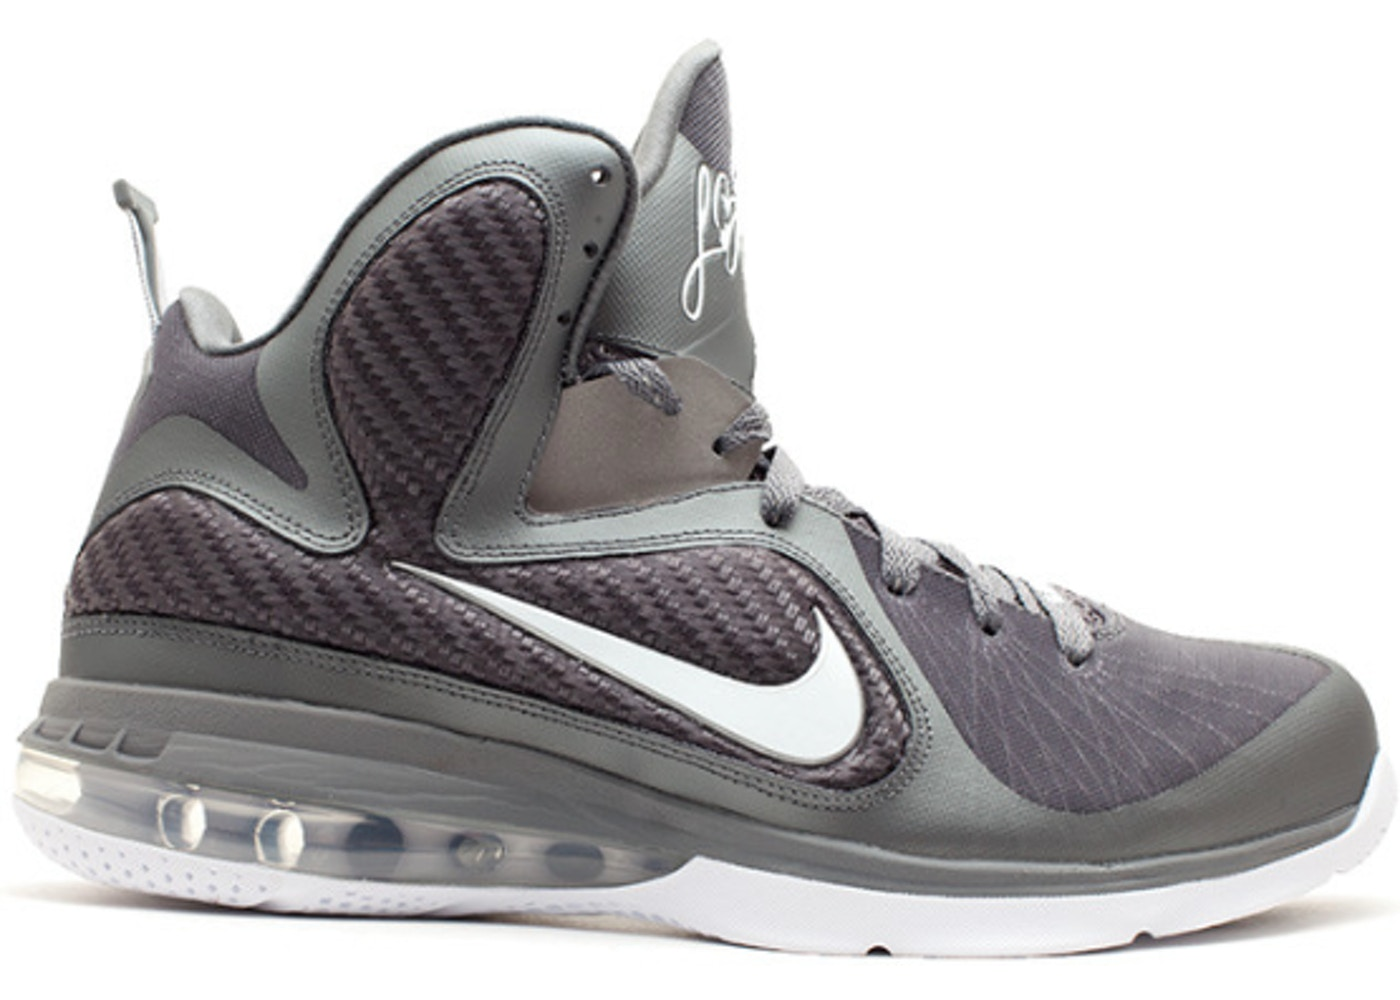 finest selection 34d1c fbf90 LeBron 9 Cool Grey